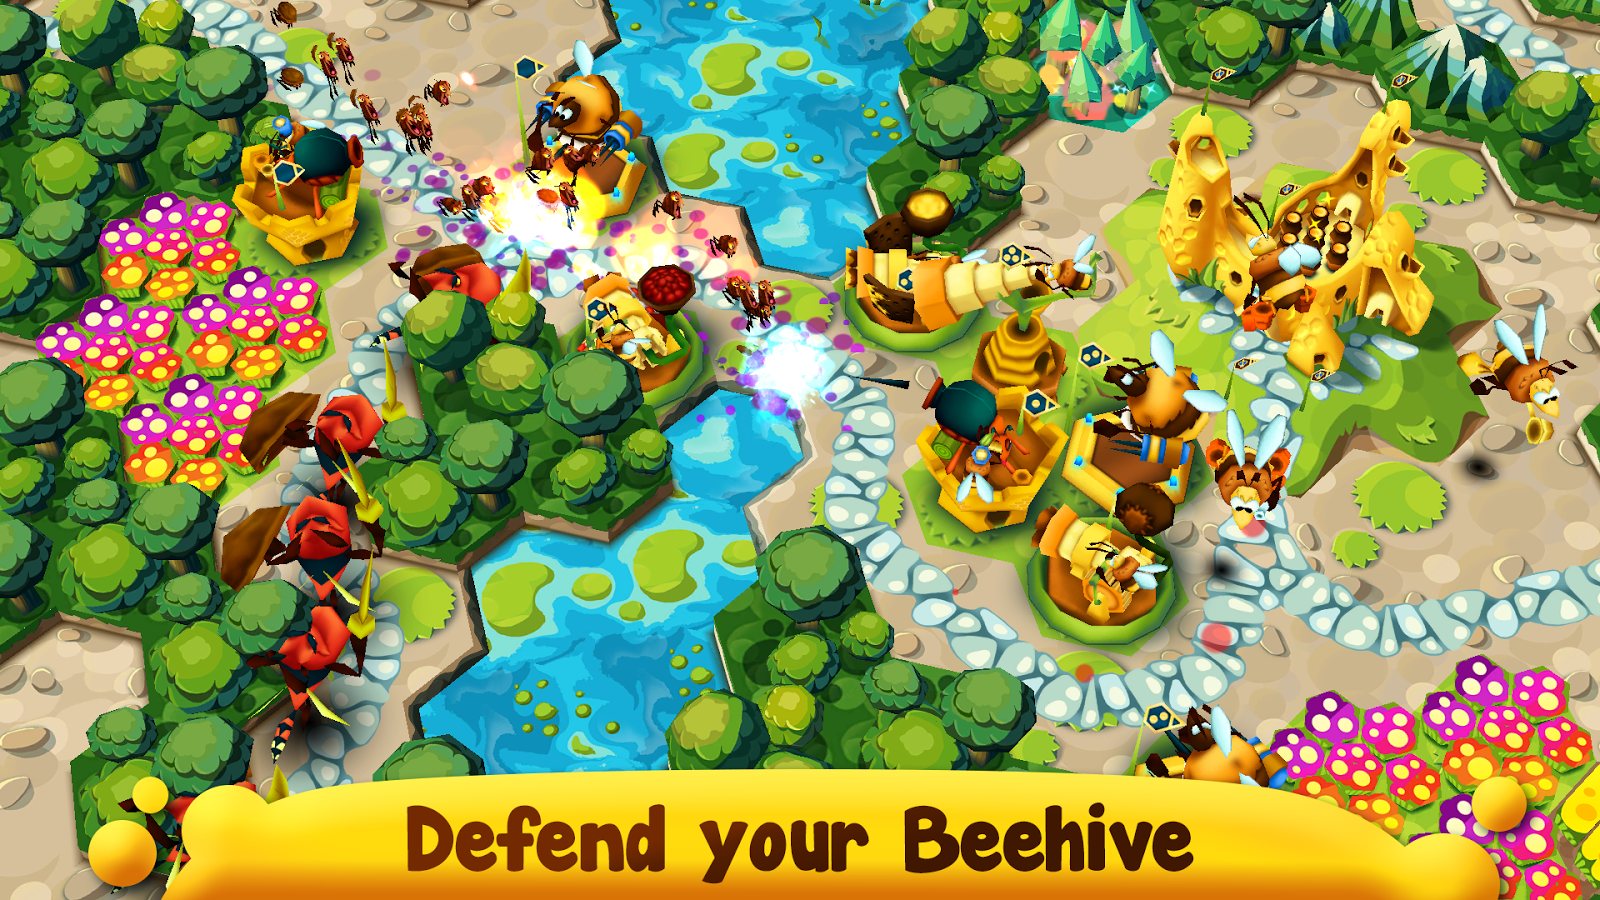 BeeFense - Fortress Defense Screenshot 12